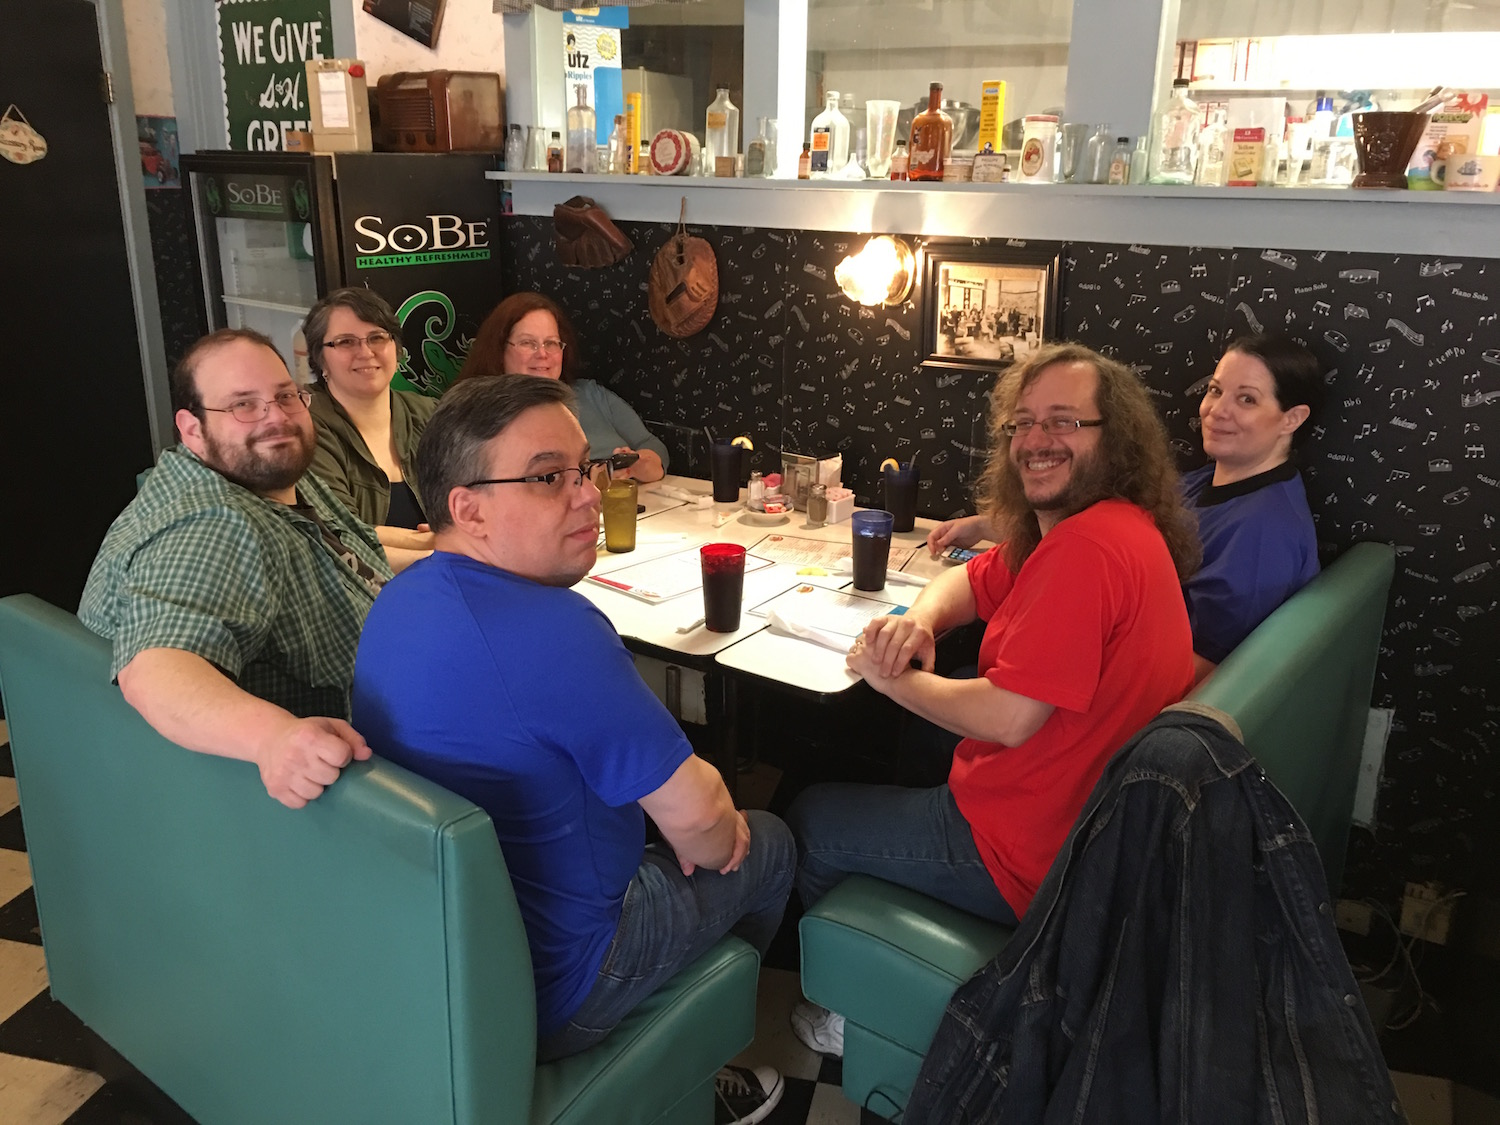 Clockwise From Front: Bill Leisner, Dave Galanter, Simantha Galanter, Wrenn Simms, Lisa Sullivan, and Keith R. A. DeCandido ©2017 Karen Ragan-George